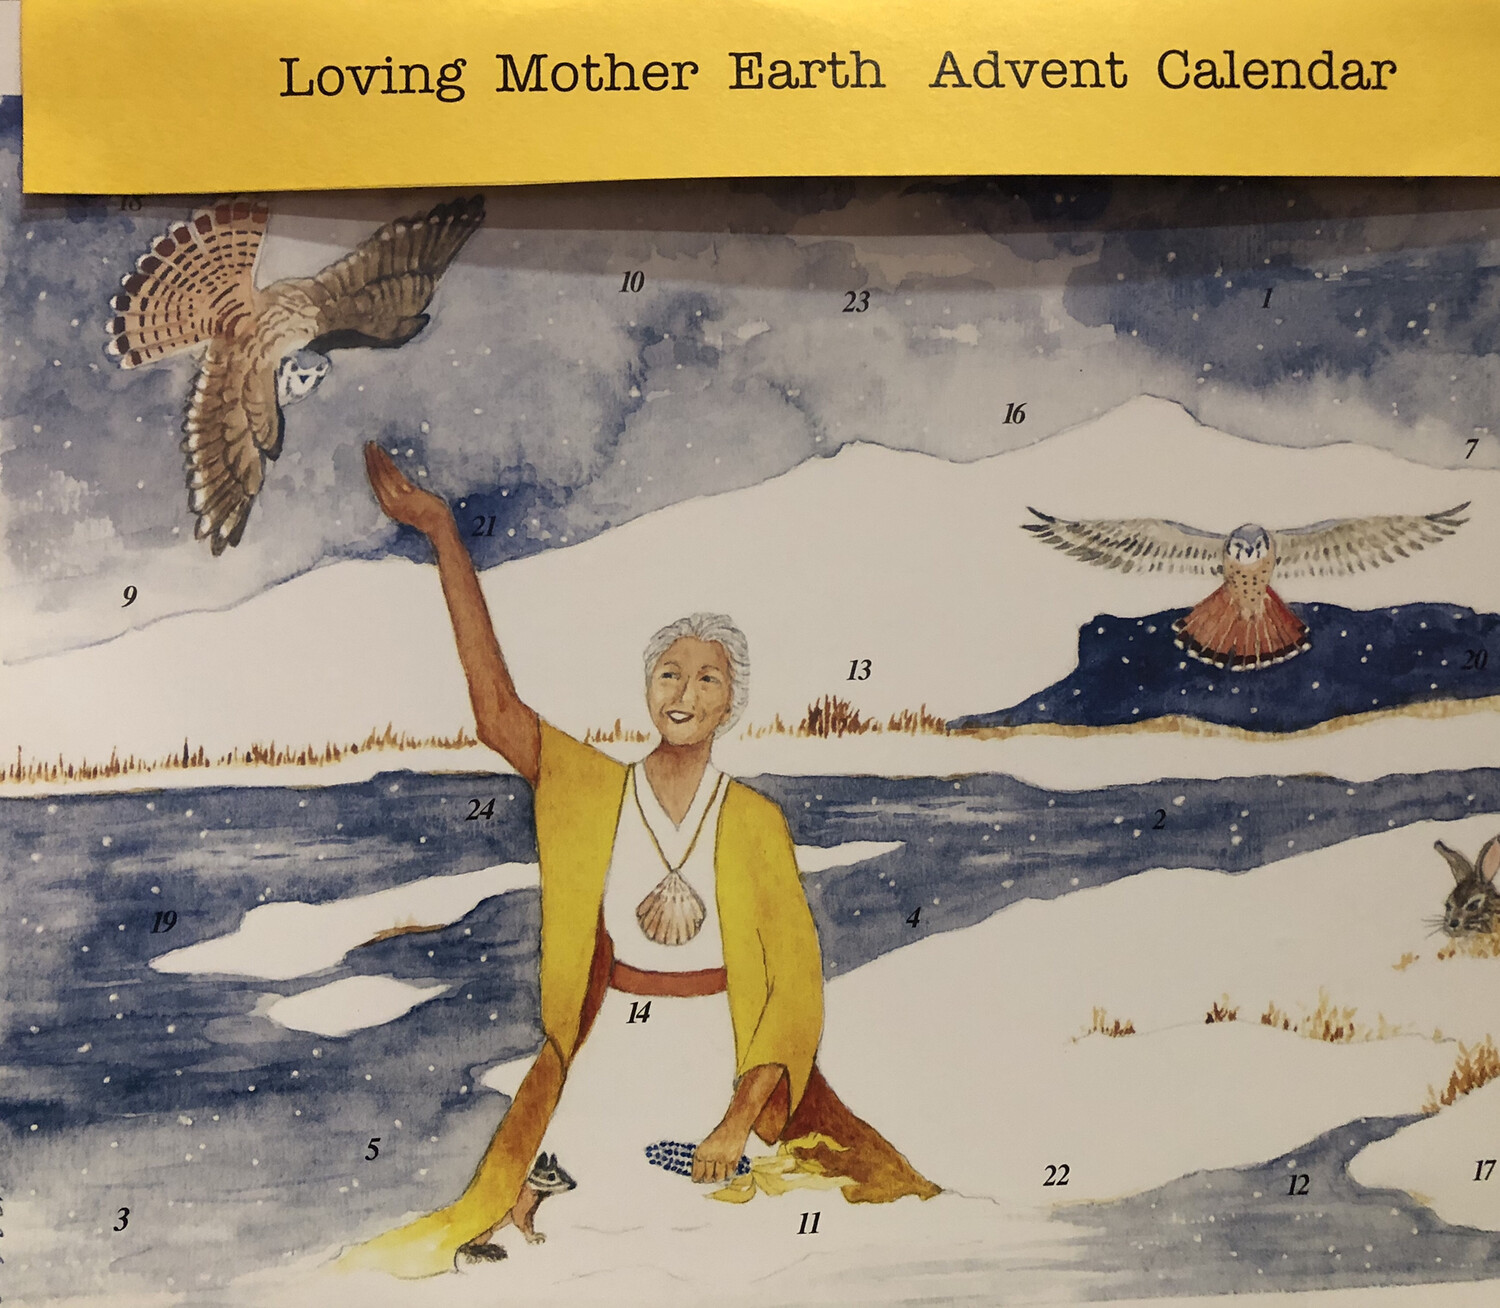 Loving Mother Earth Advent Calendar